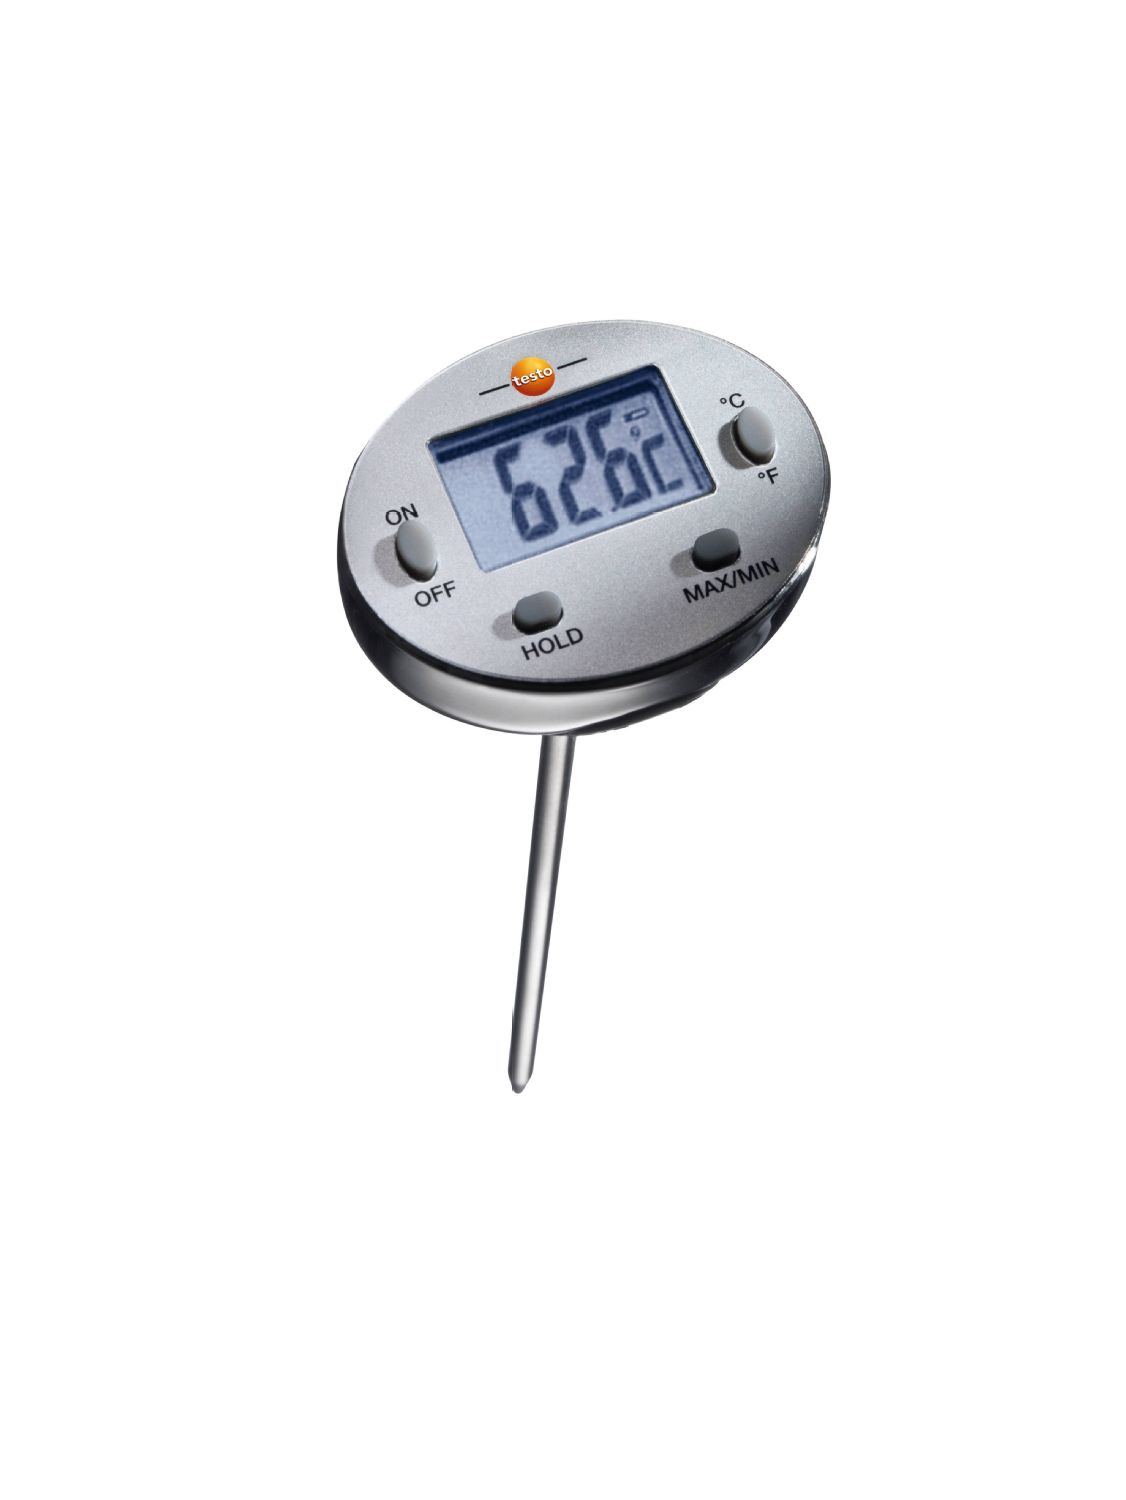 Mini-thermometer-p-in-tem-002229.jpg